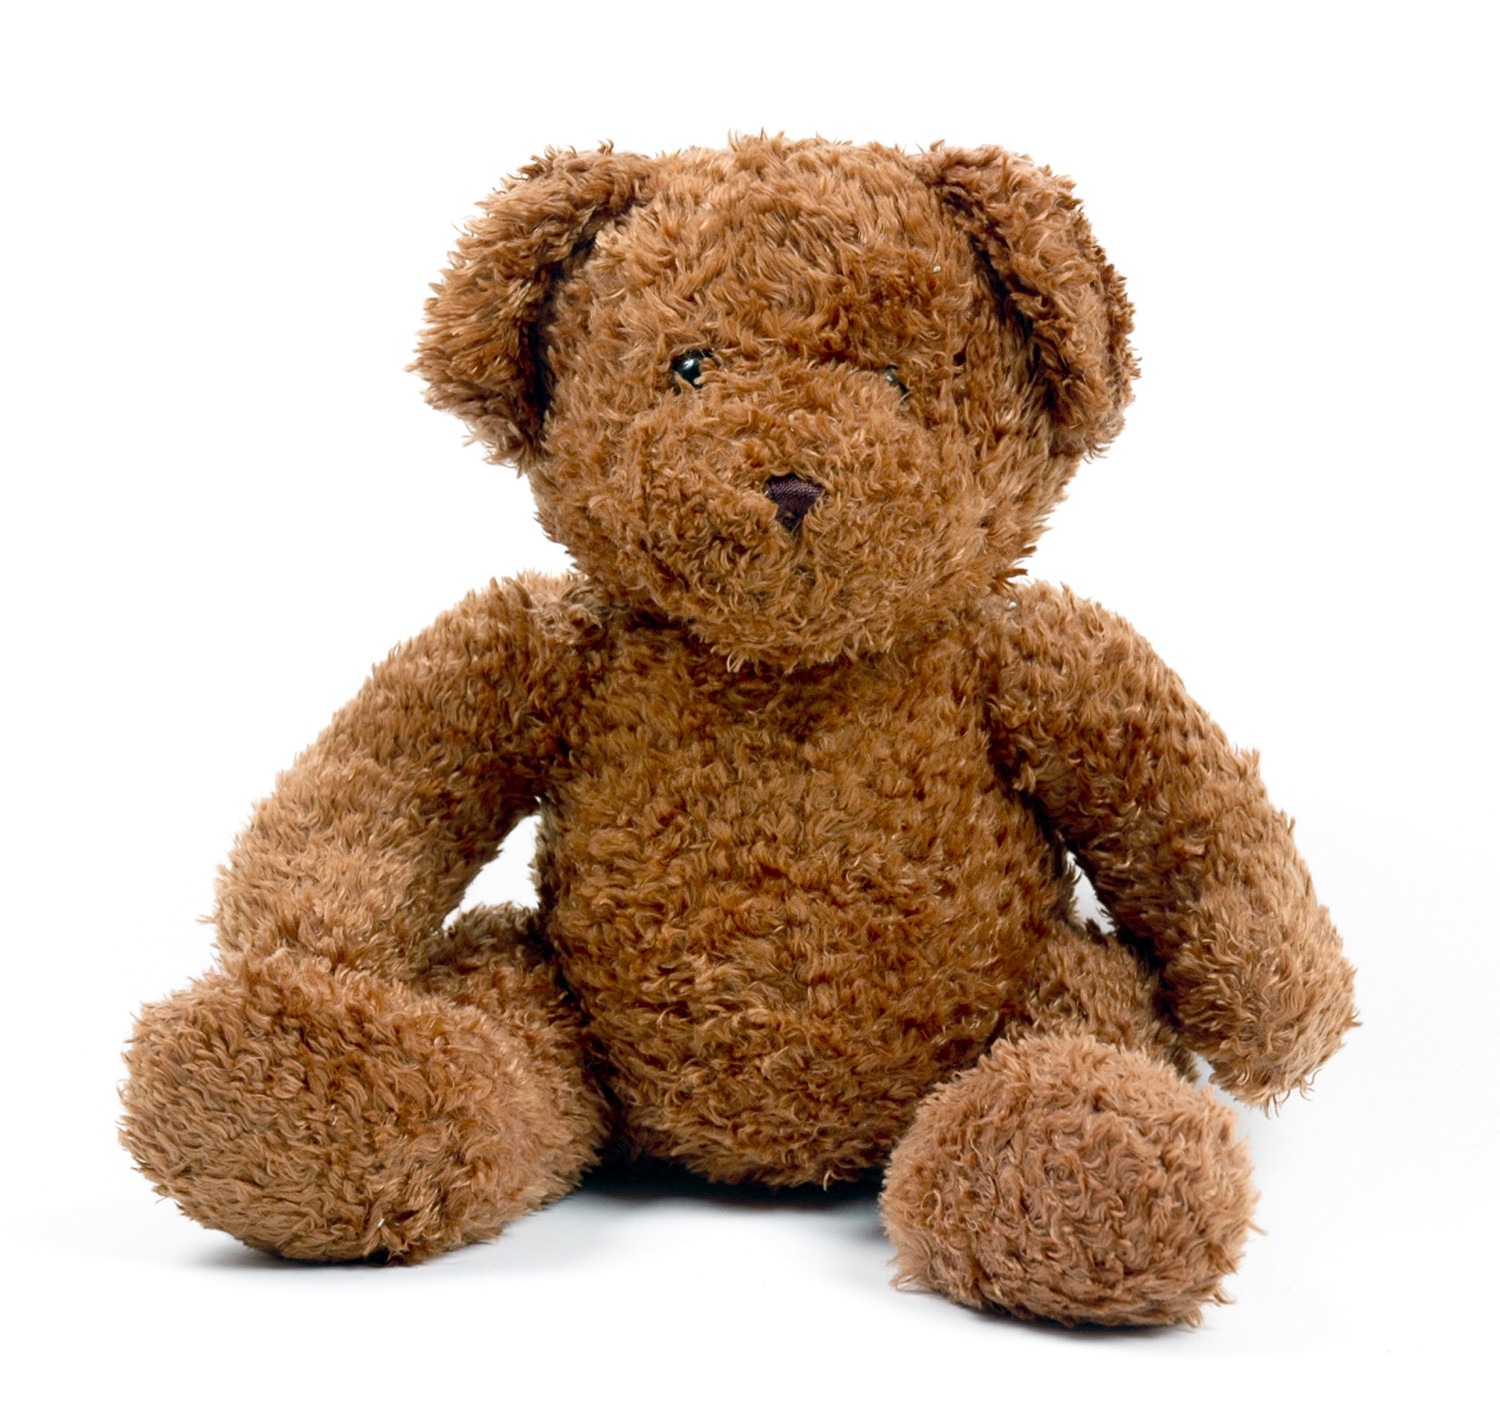 Teddy Bear Wallpapers,Pictures,Scraps ~ thecinemazone